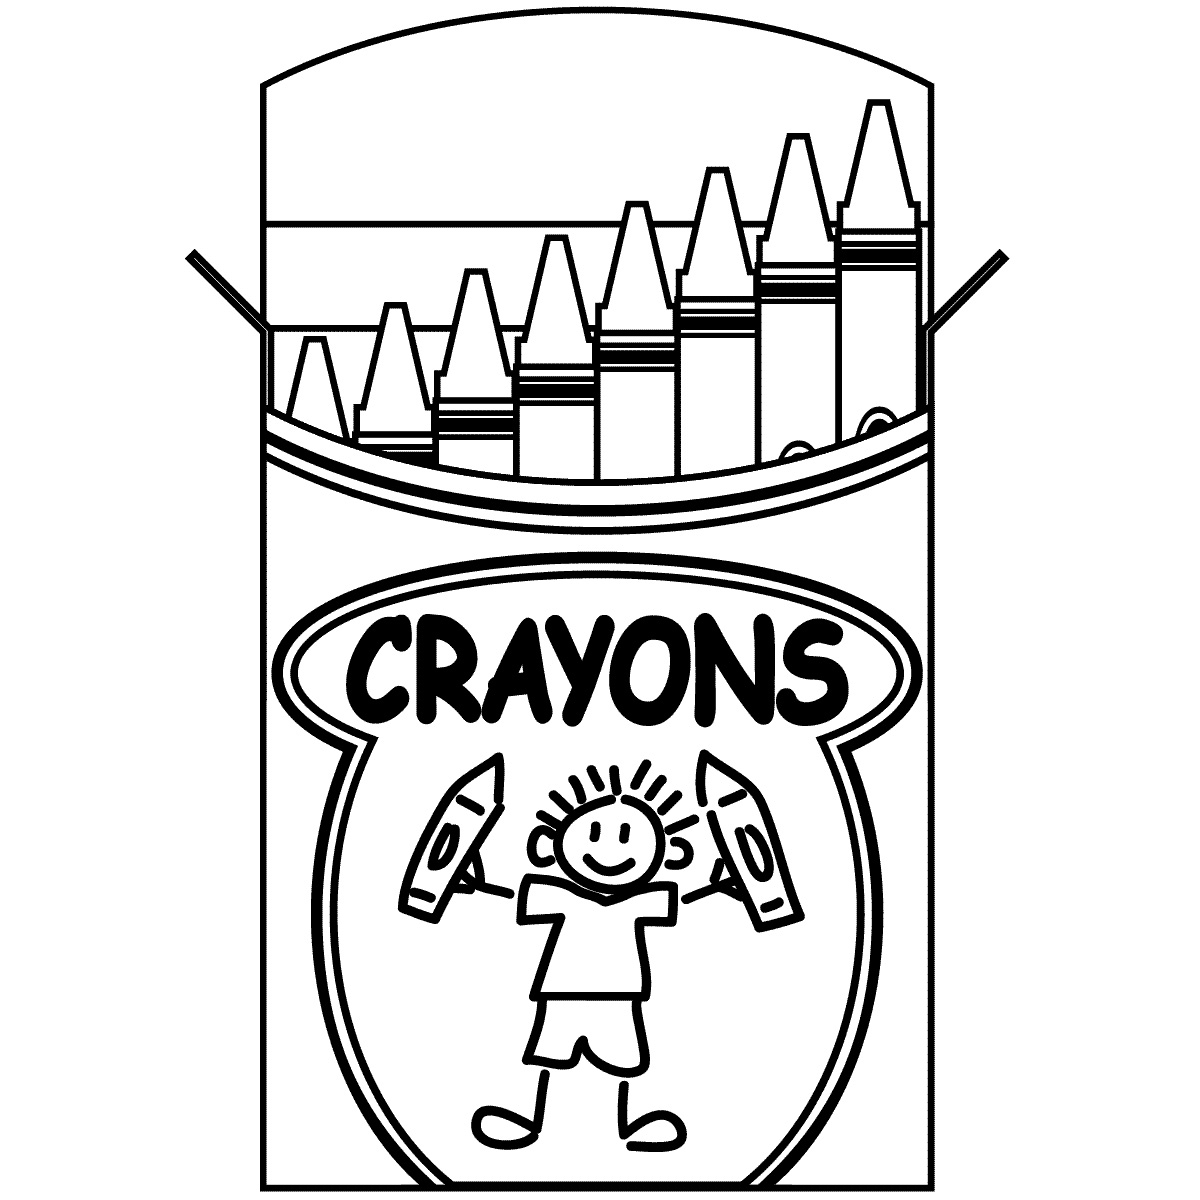 Awesome clipart black and white. Crayon design digital p